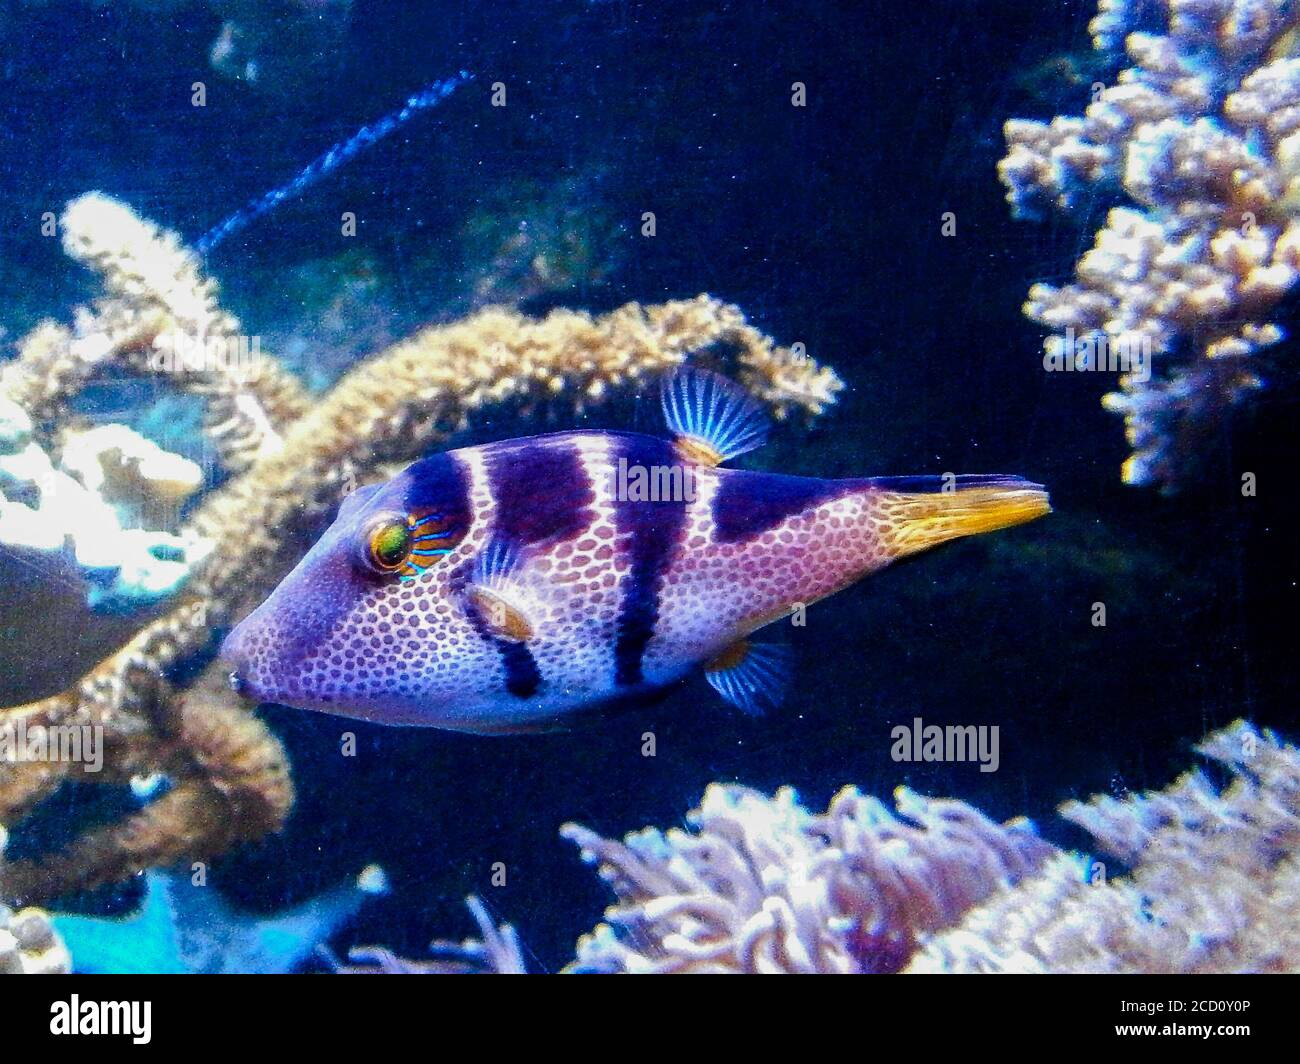 Spider's Eye Puffer - Canthigaster valentini a saltwater fish with a distinctive pattern. Stock Photo